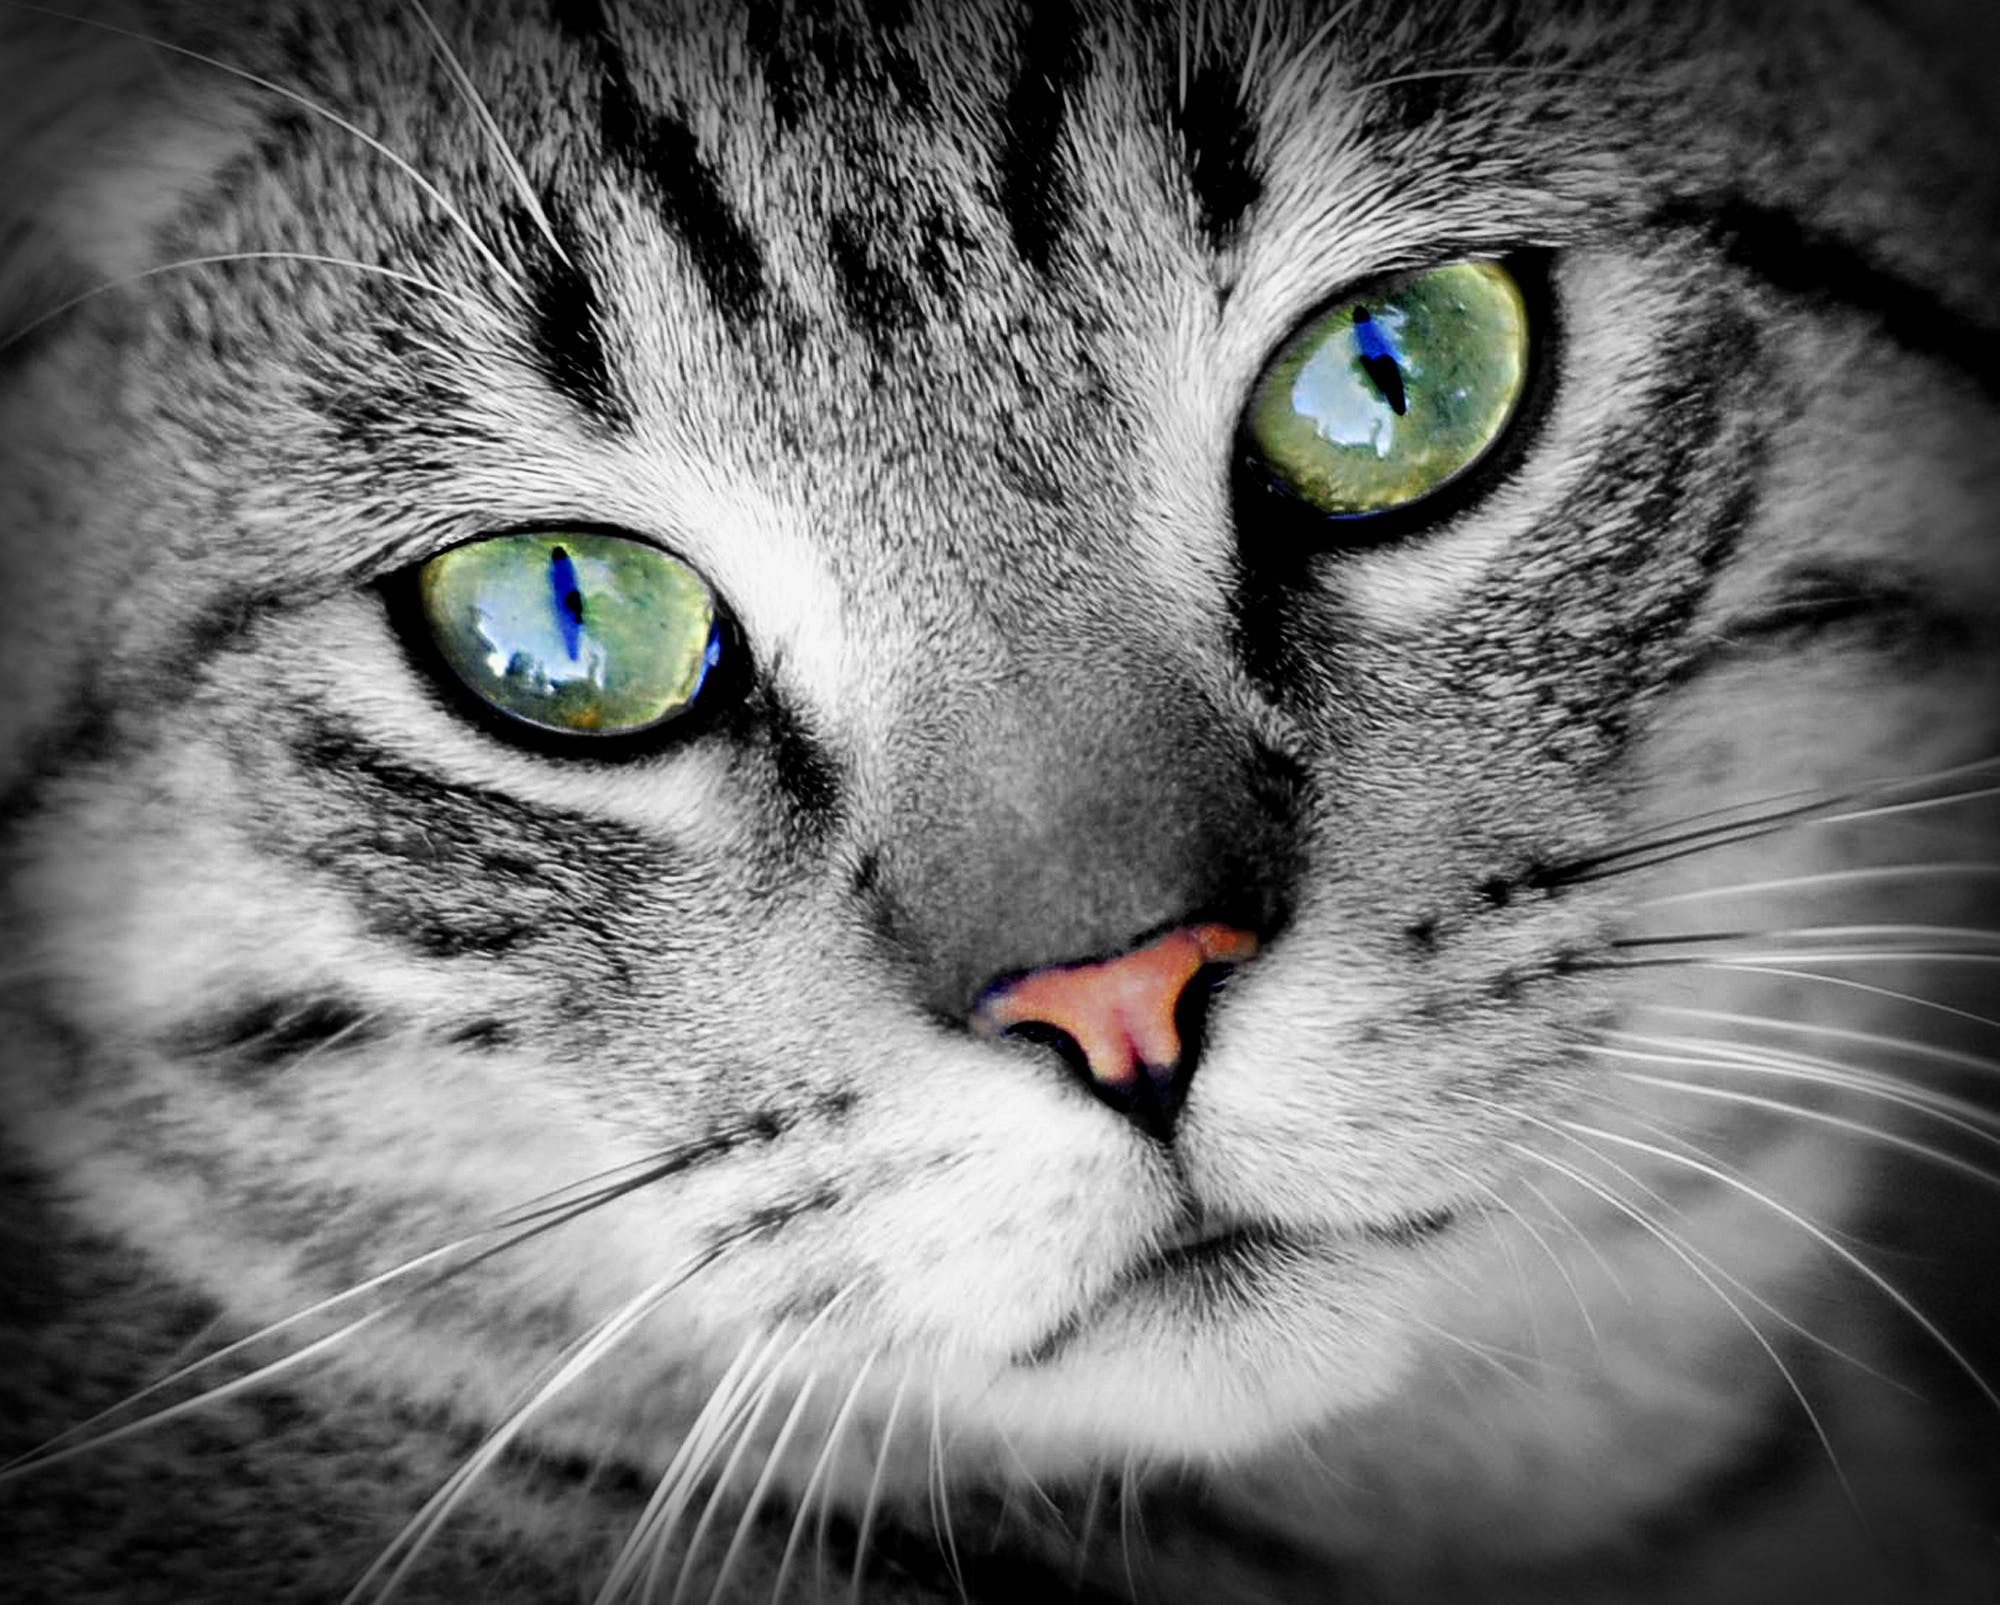 Wildlife Photography of Silver Tabby Cat